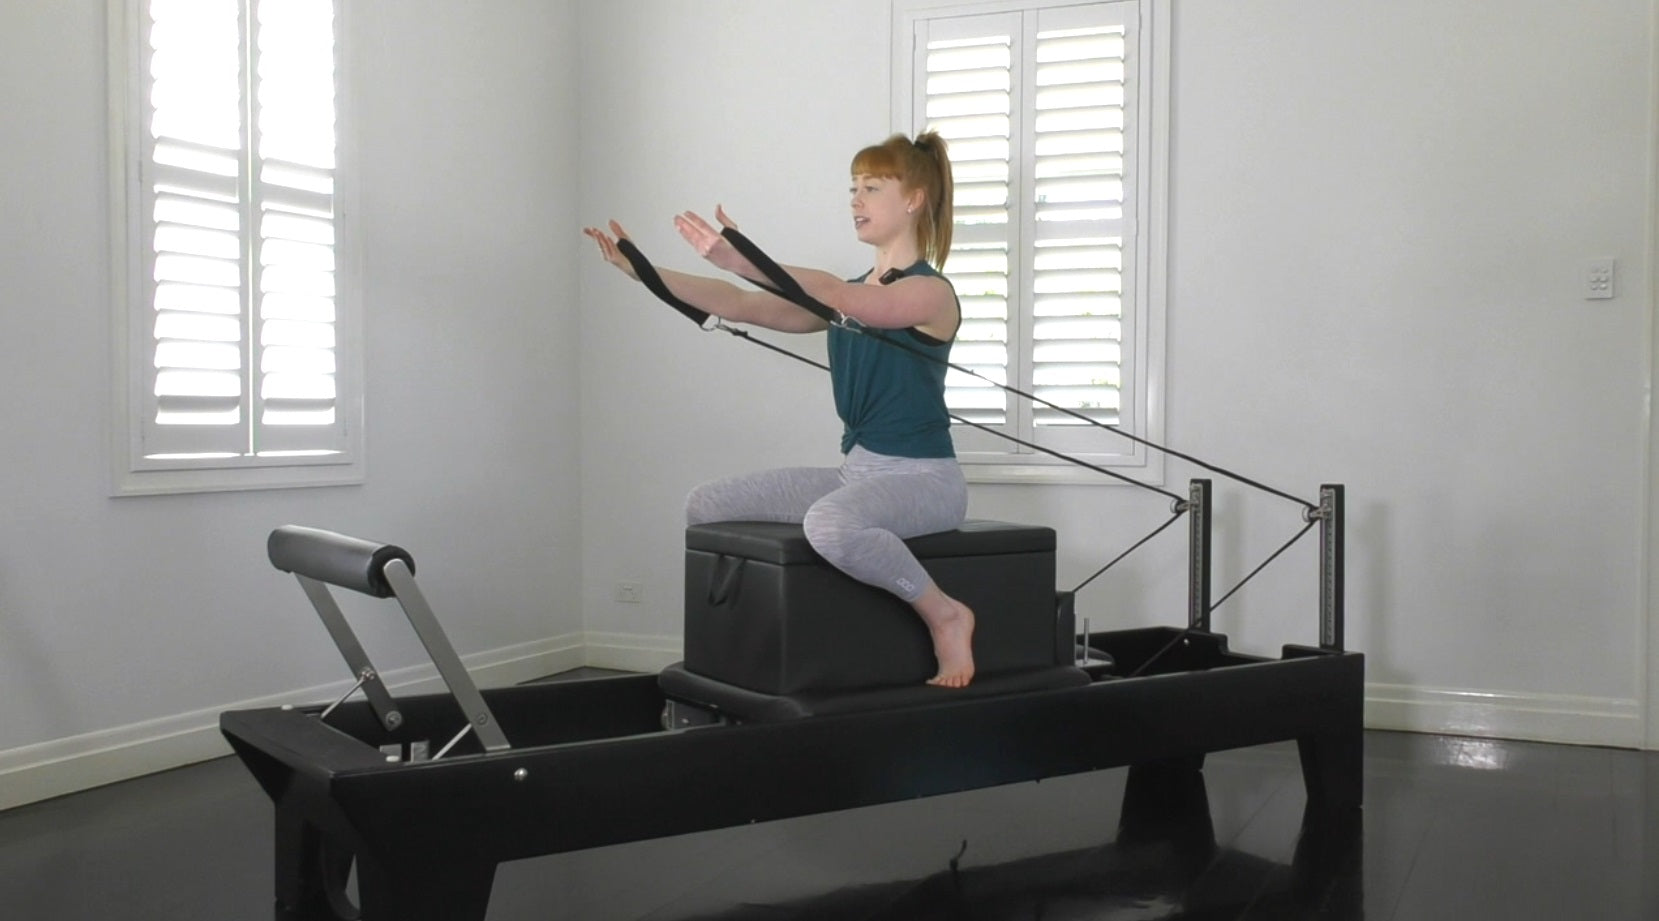 Reformer Workout Video (Download)